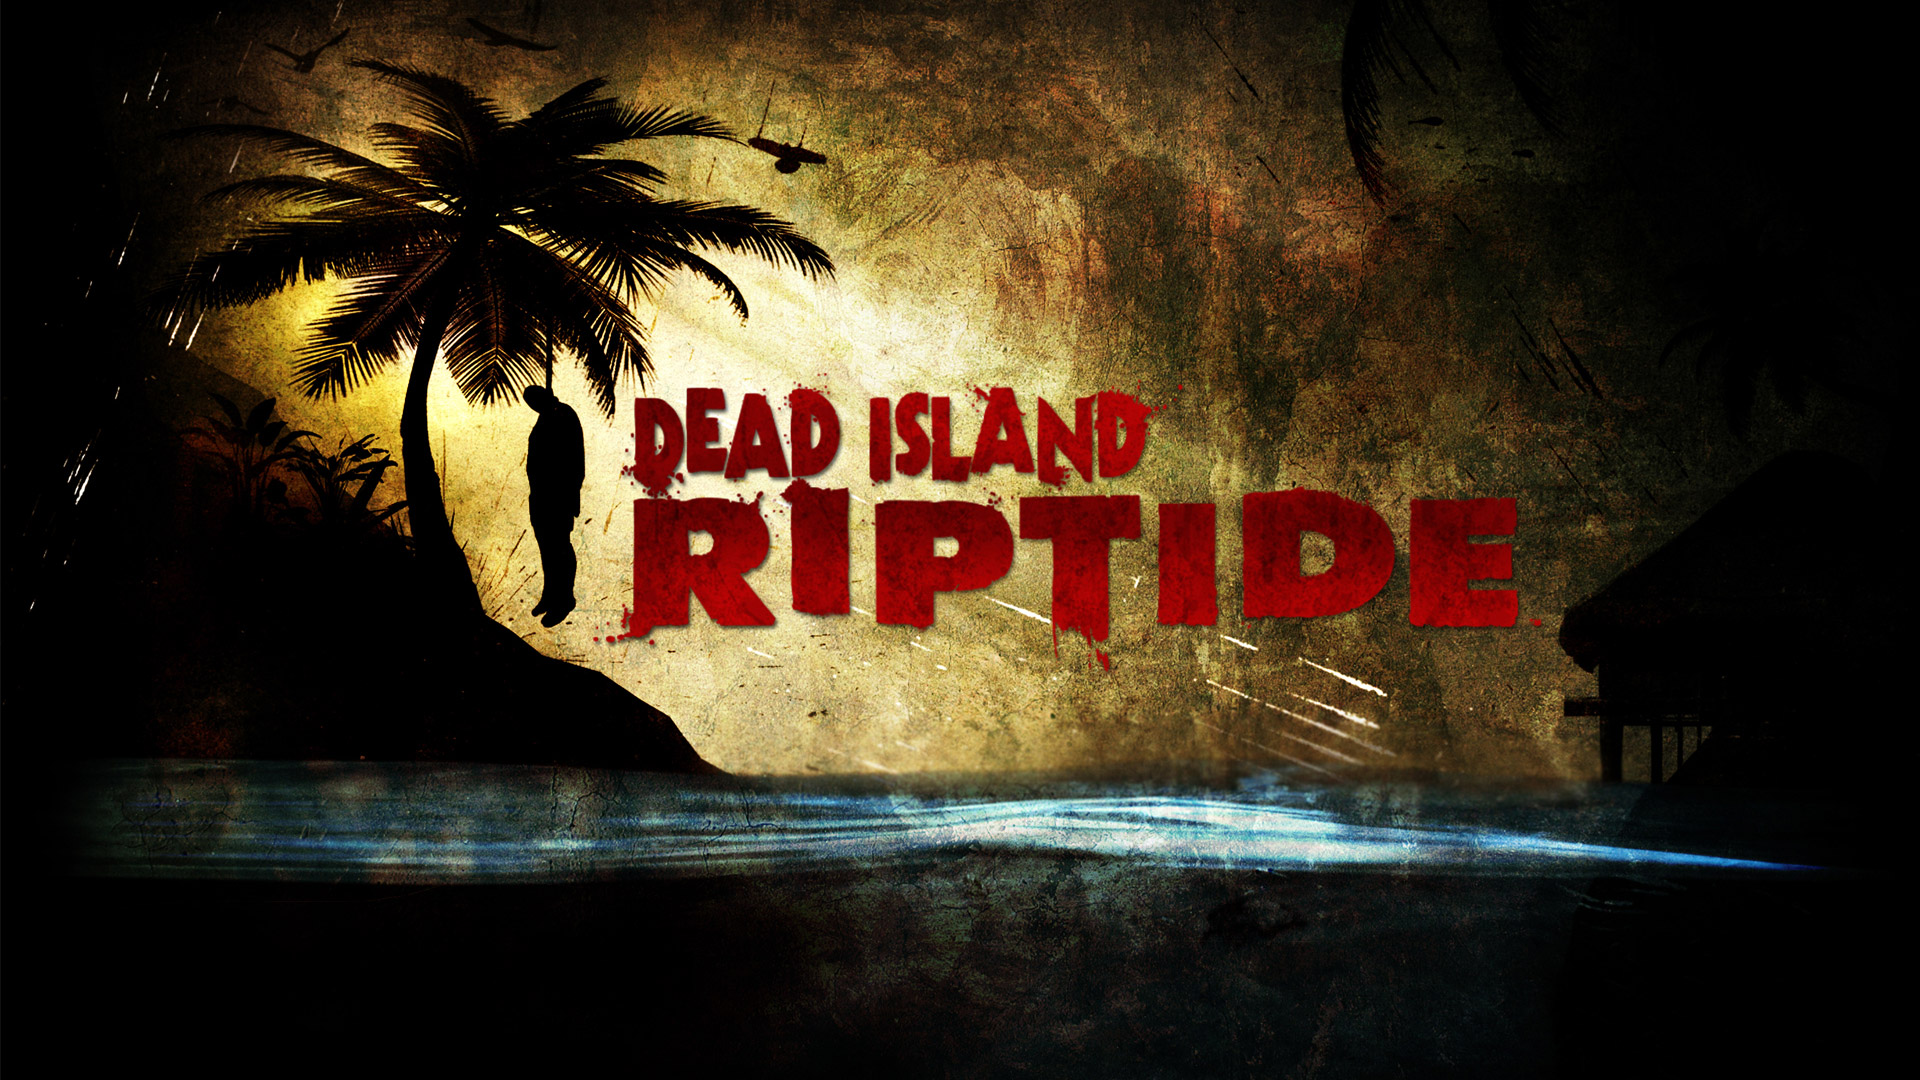 Dead Island: Riptide Wallpaper in 1920x1080